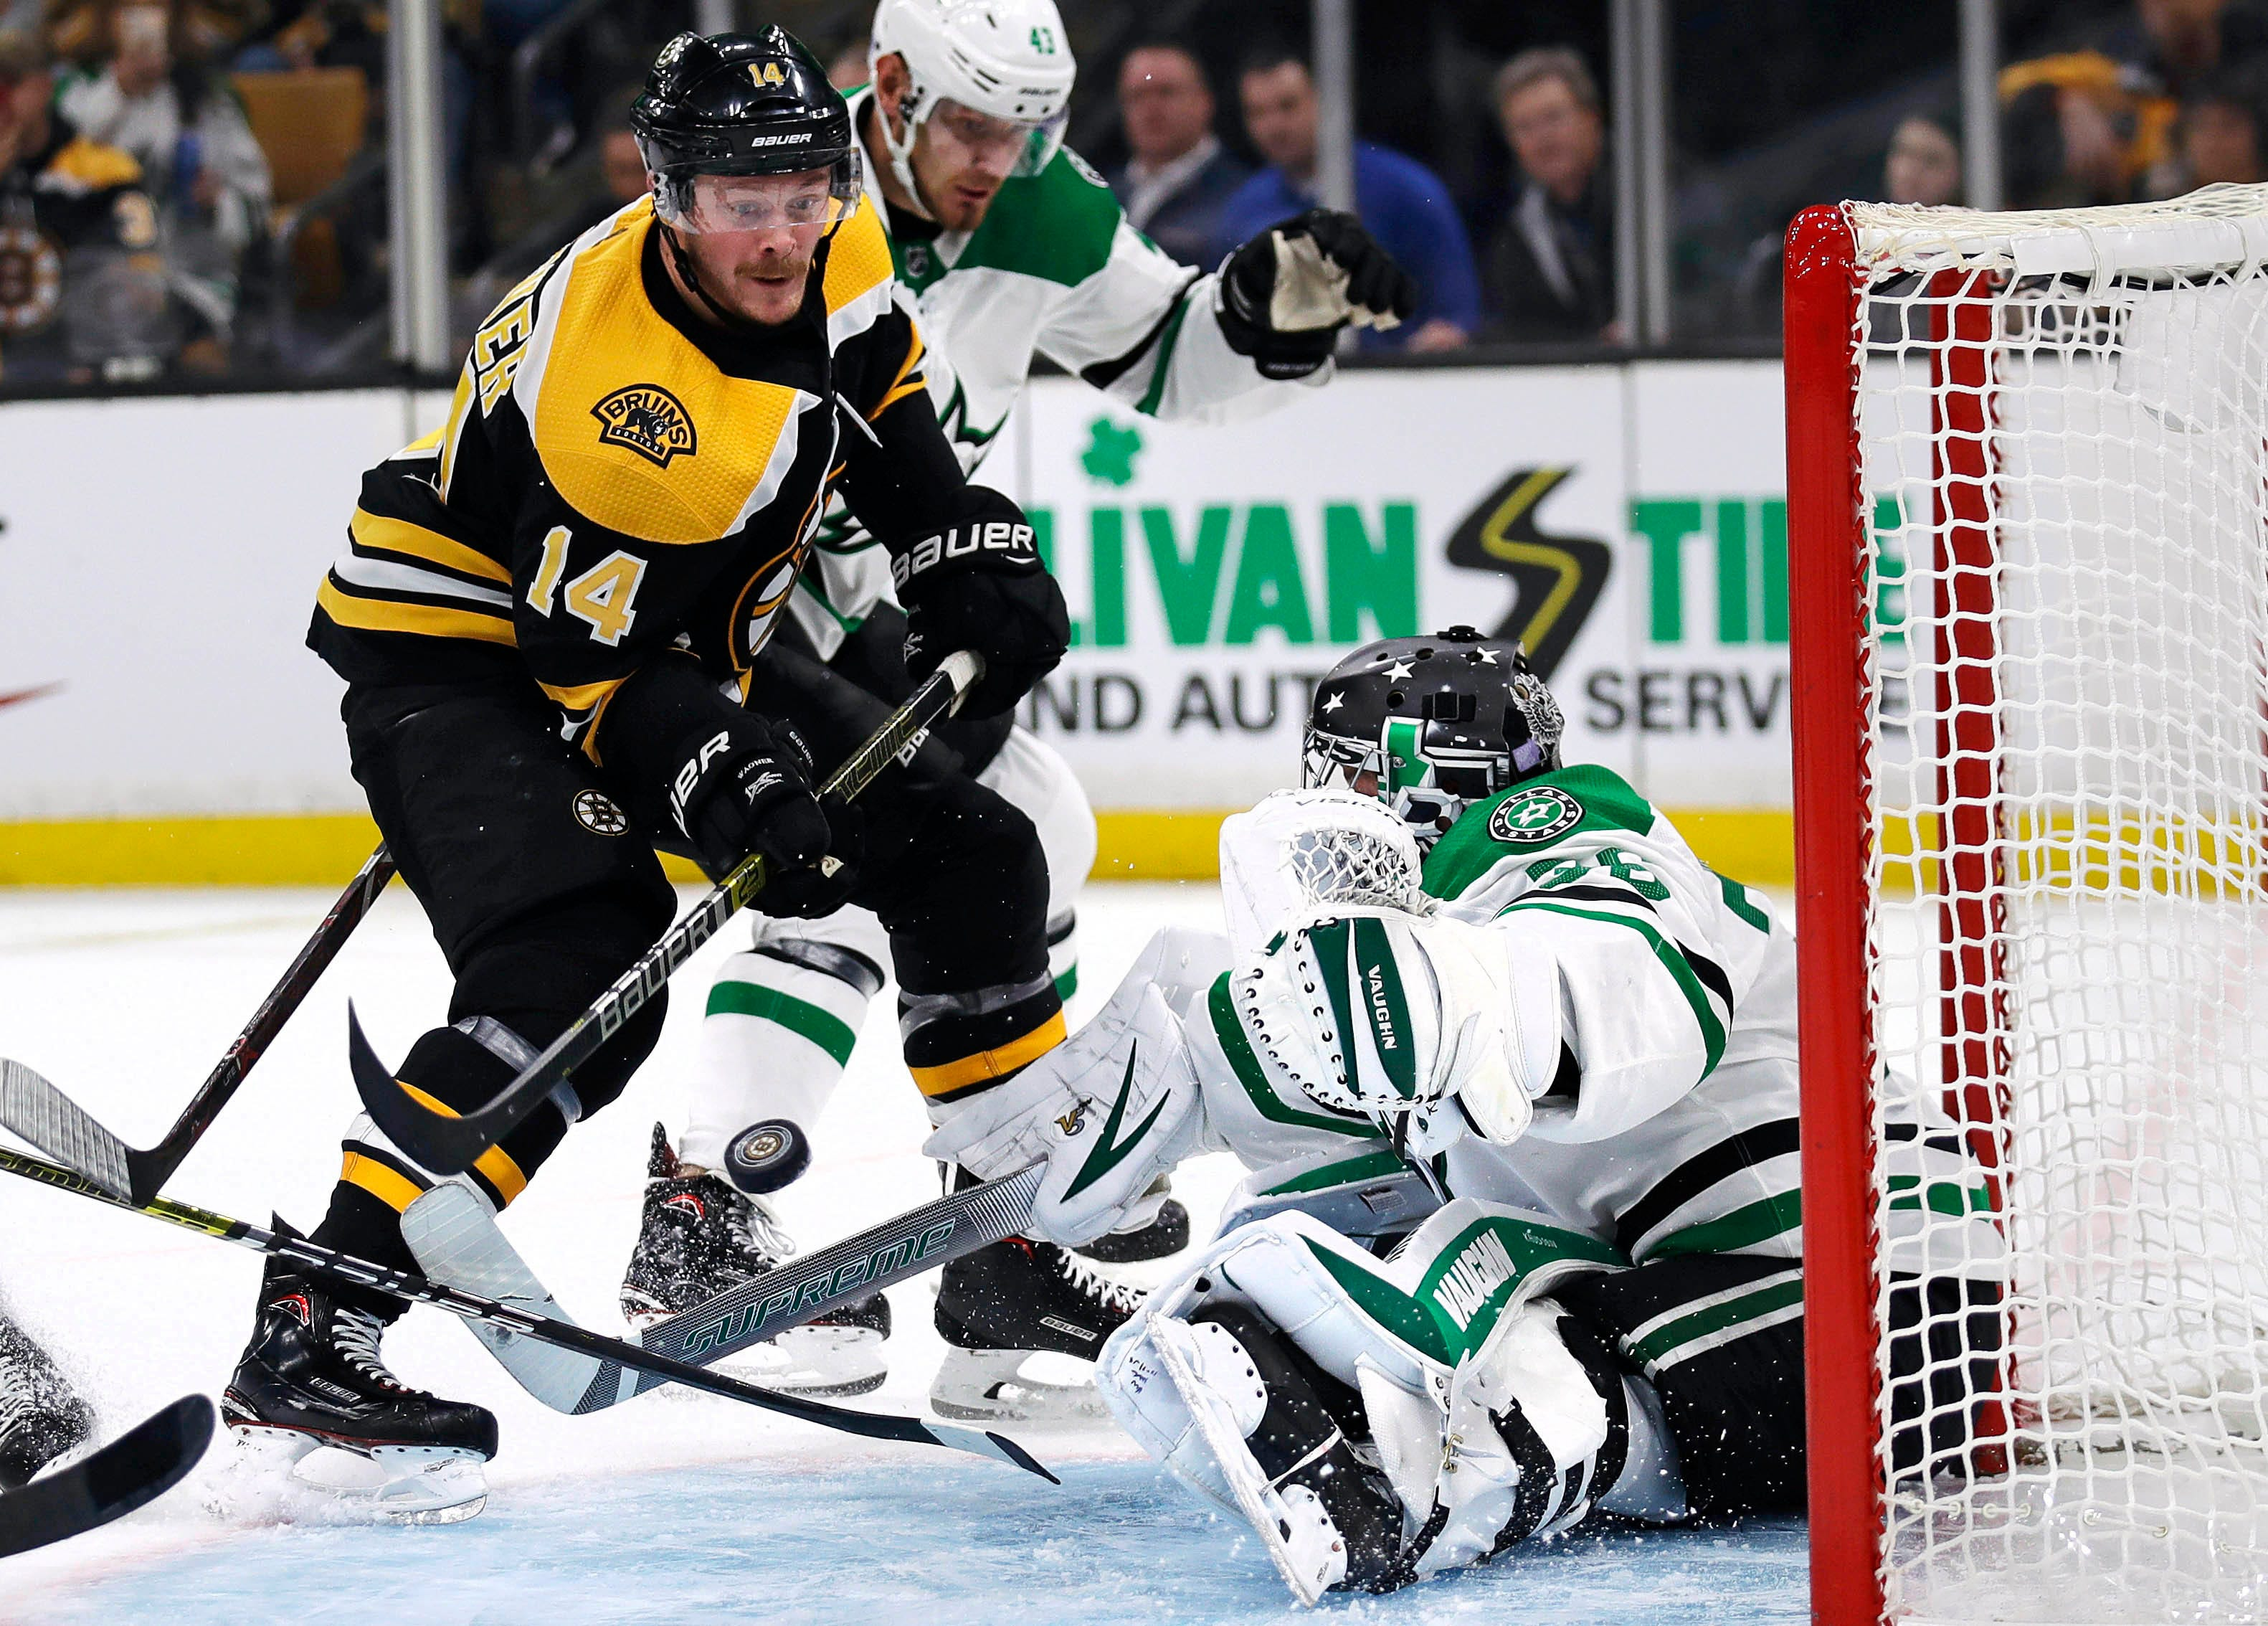 Marchand scores in OT to lift Bruins over Stars 2-1